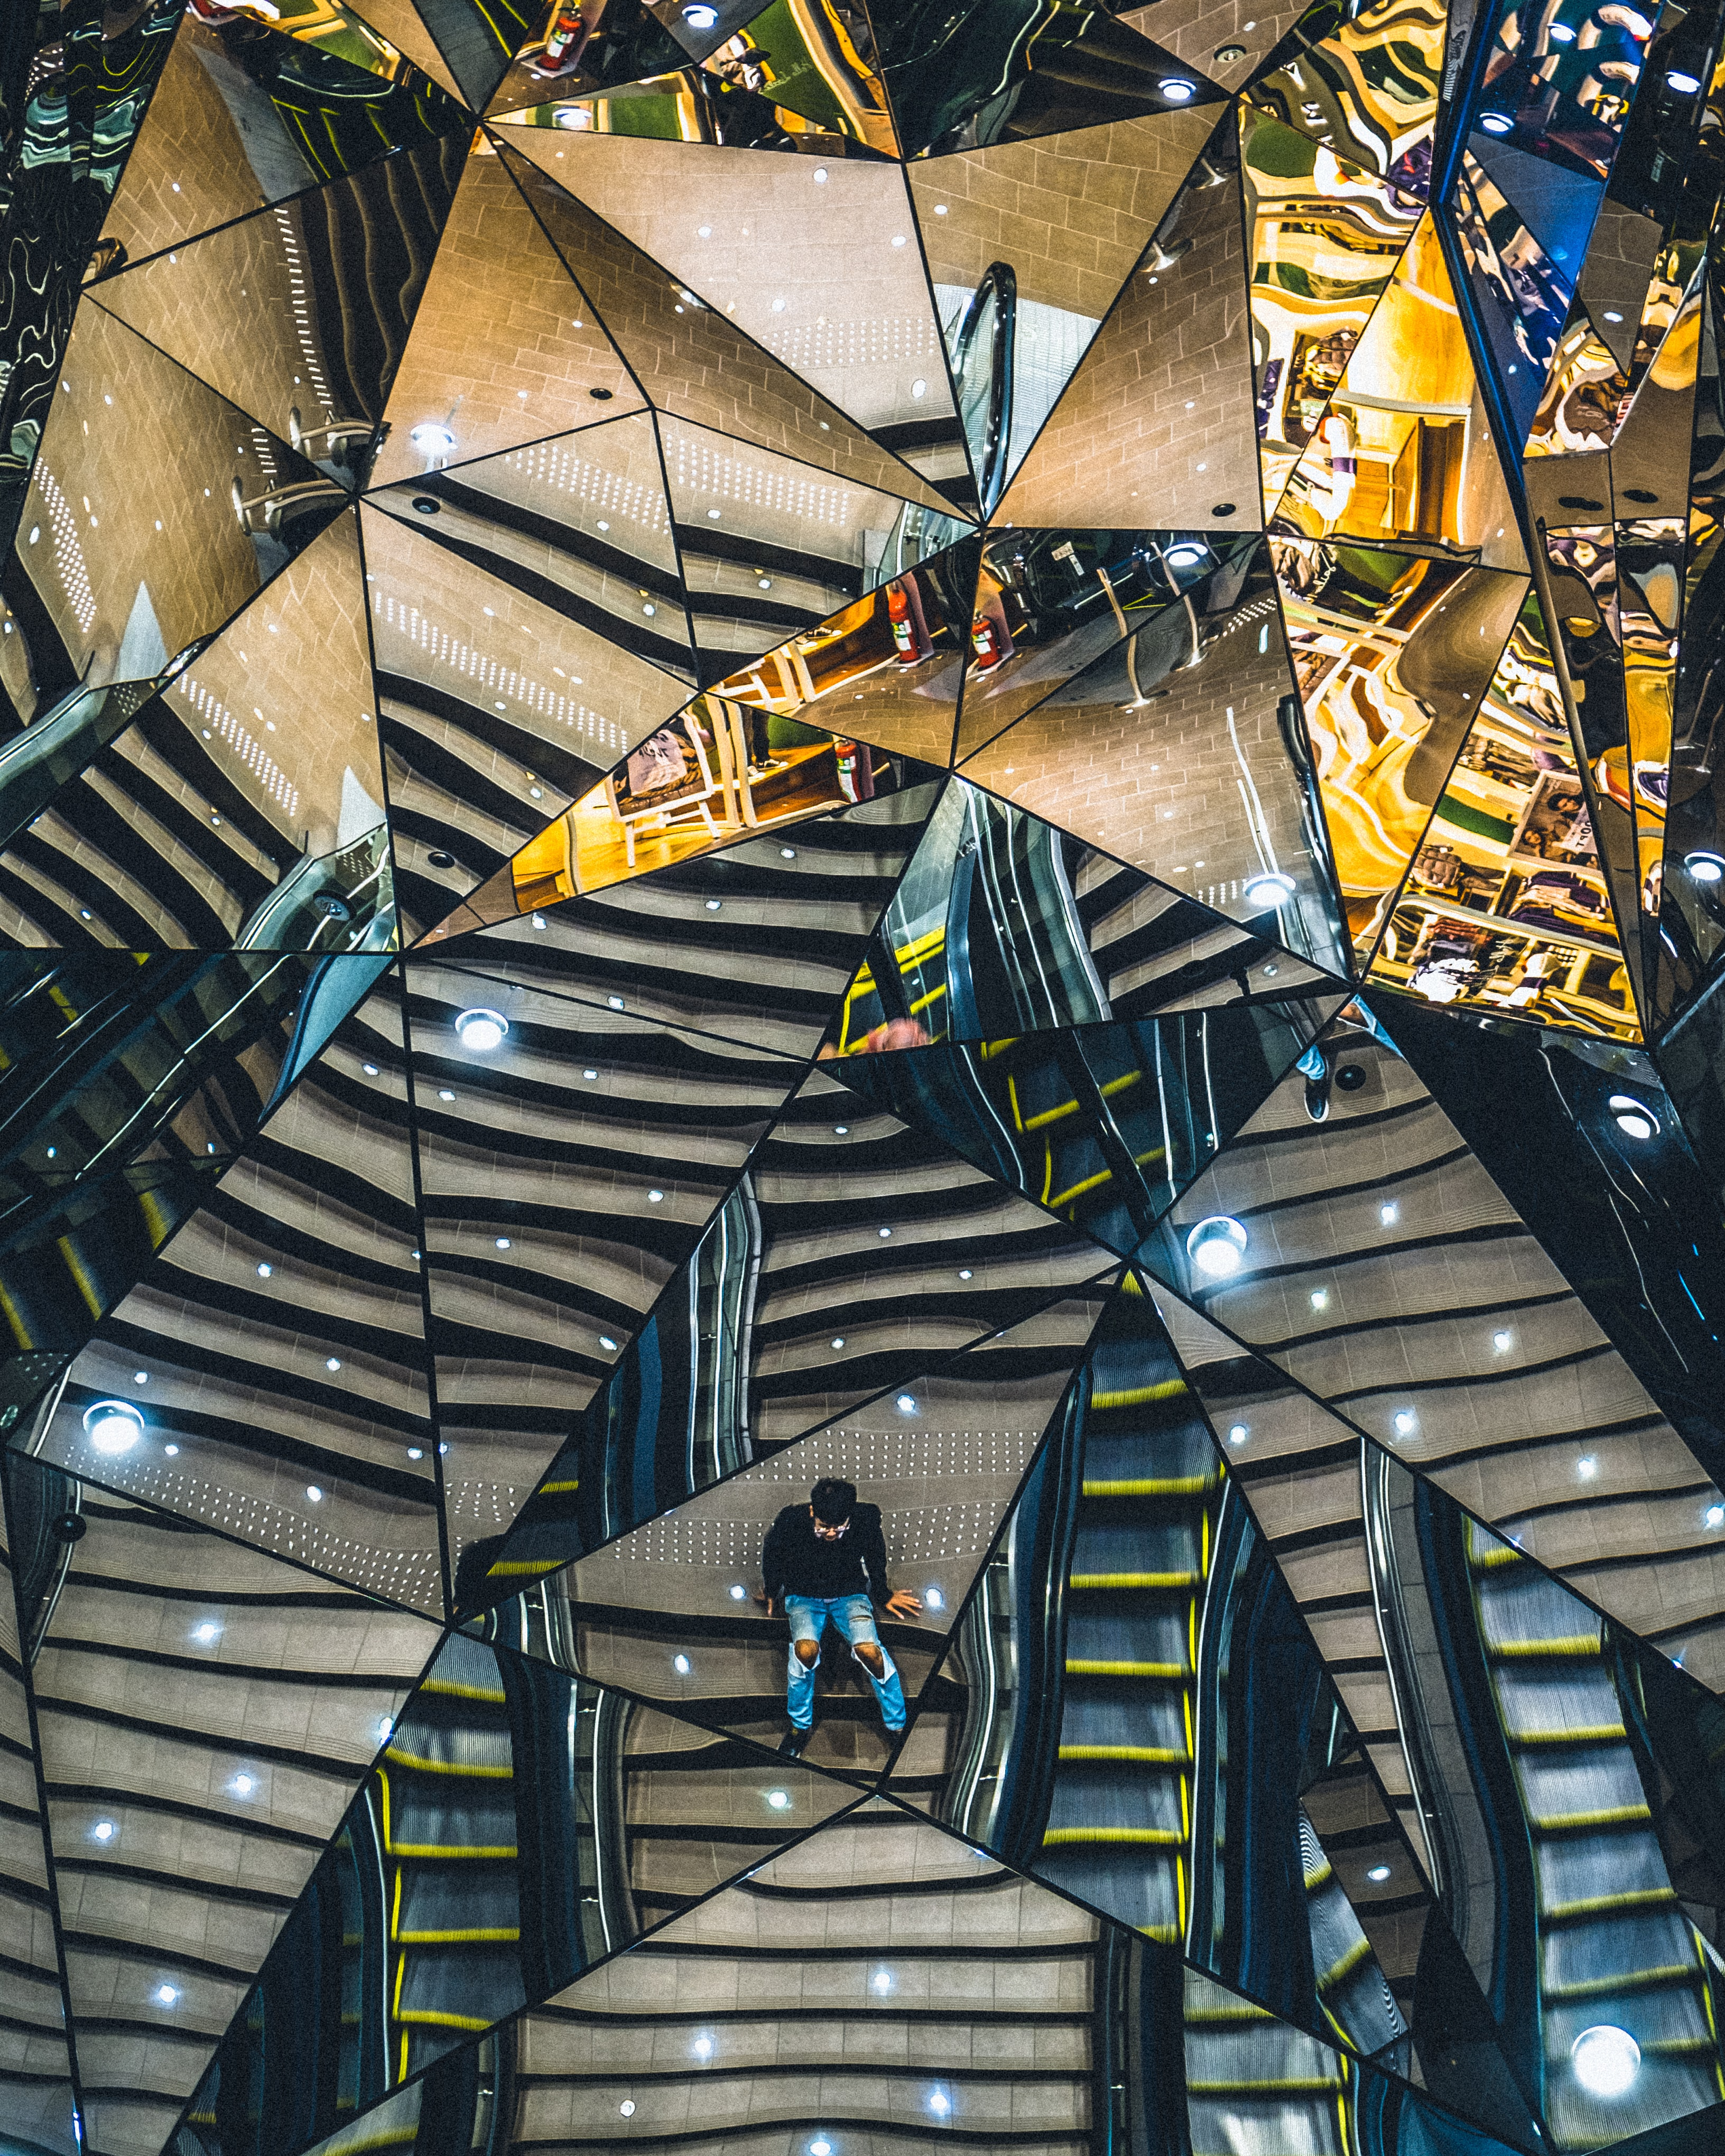 Reflection of a staircase and an elevator in a mirror composed of triangular parts